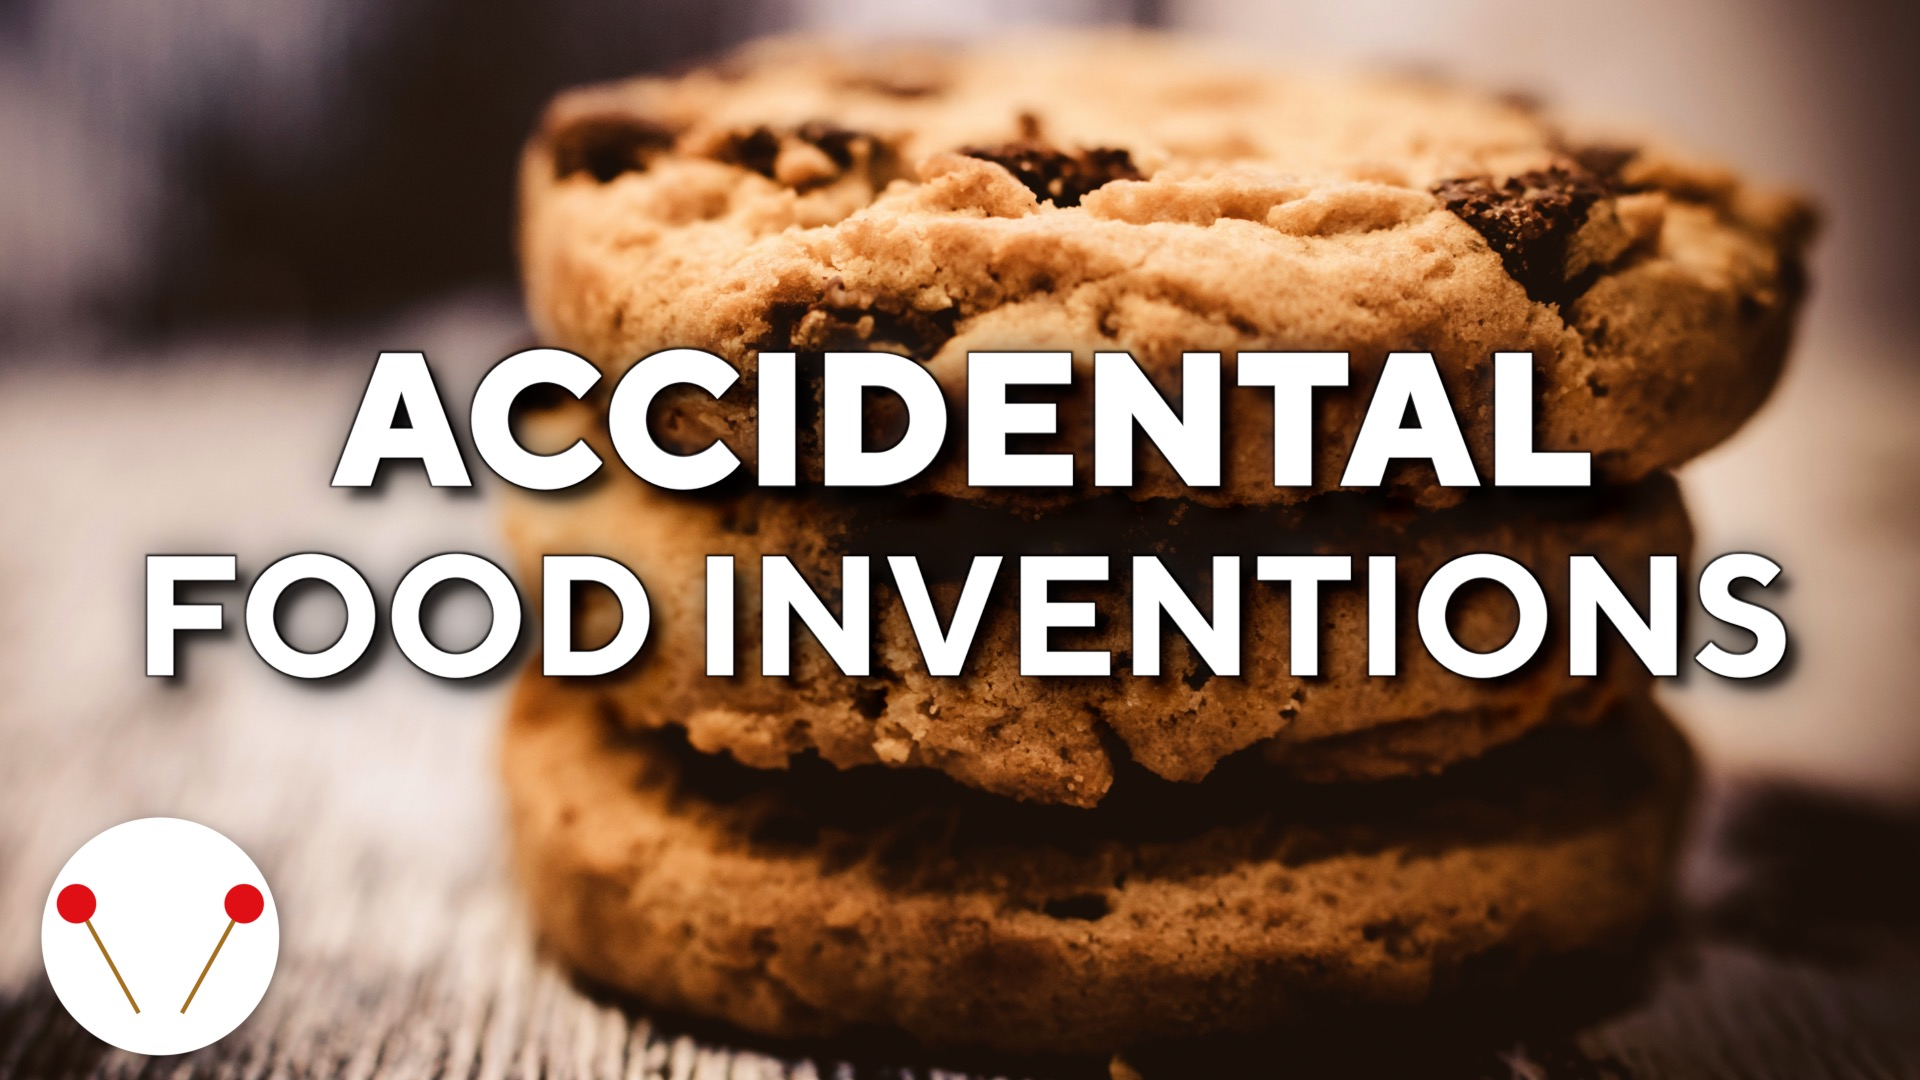 Top 10 Accidental Food Inventions